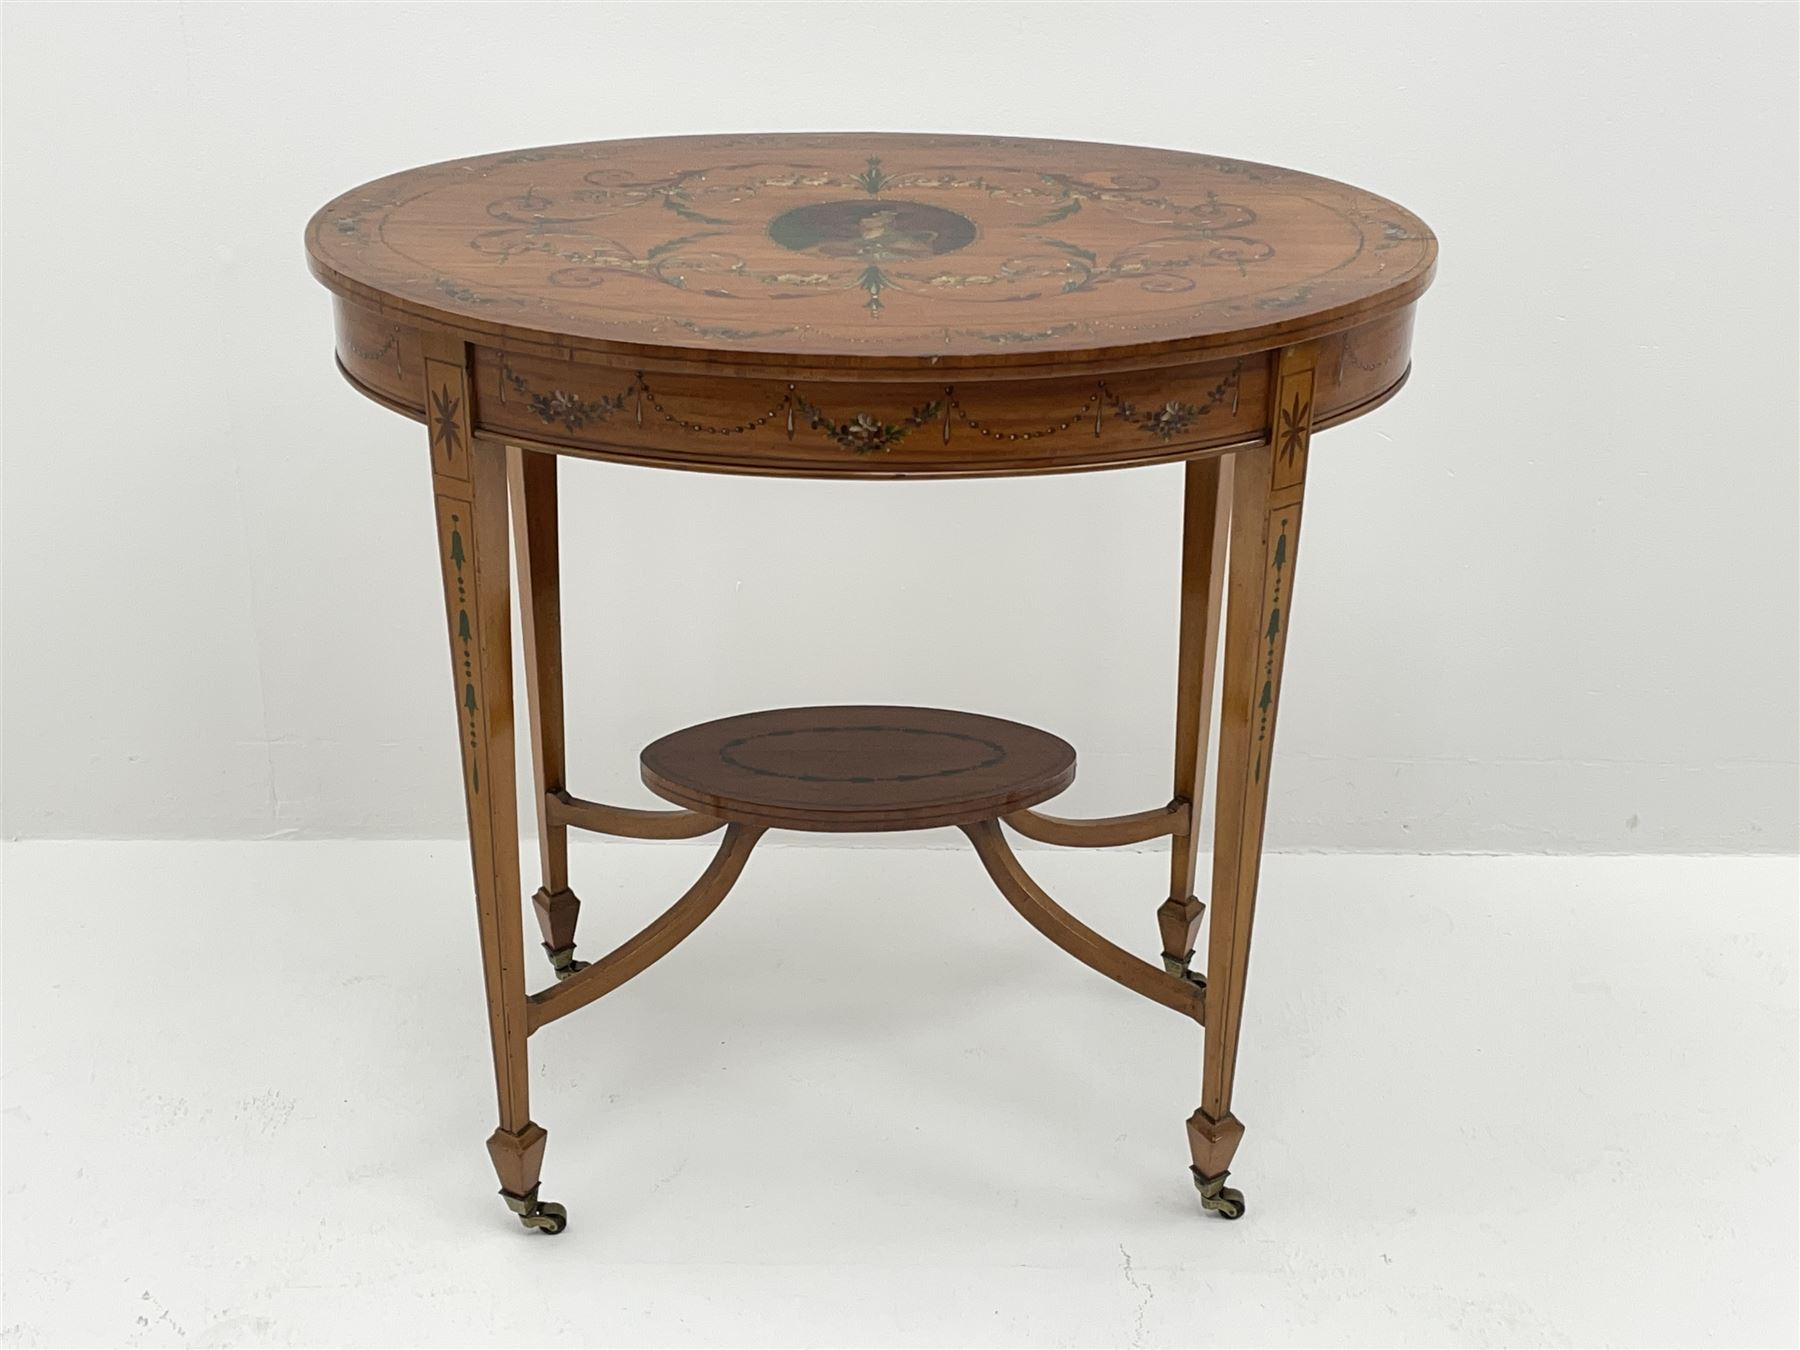 Edwardian Sheraton revival satinwood and painted centre table - Image 5 of 8